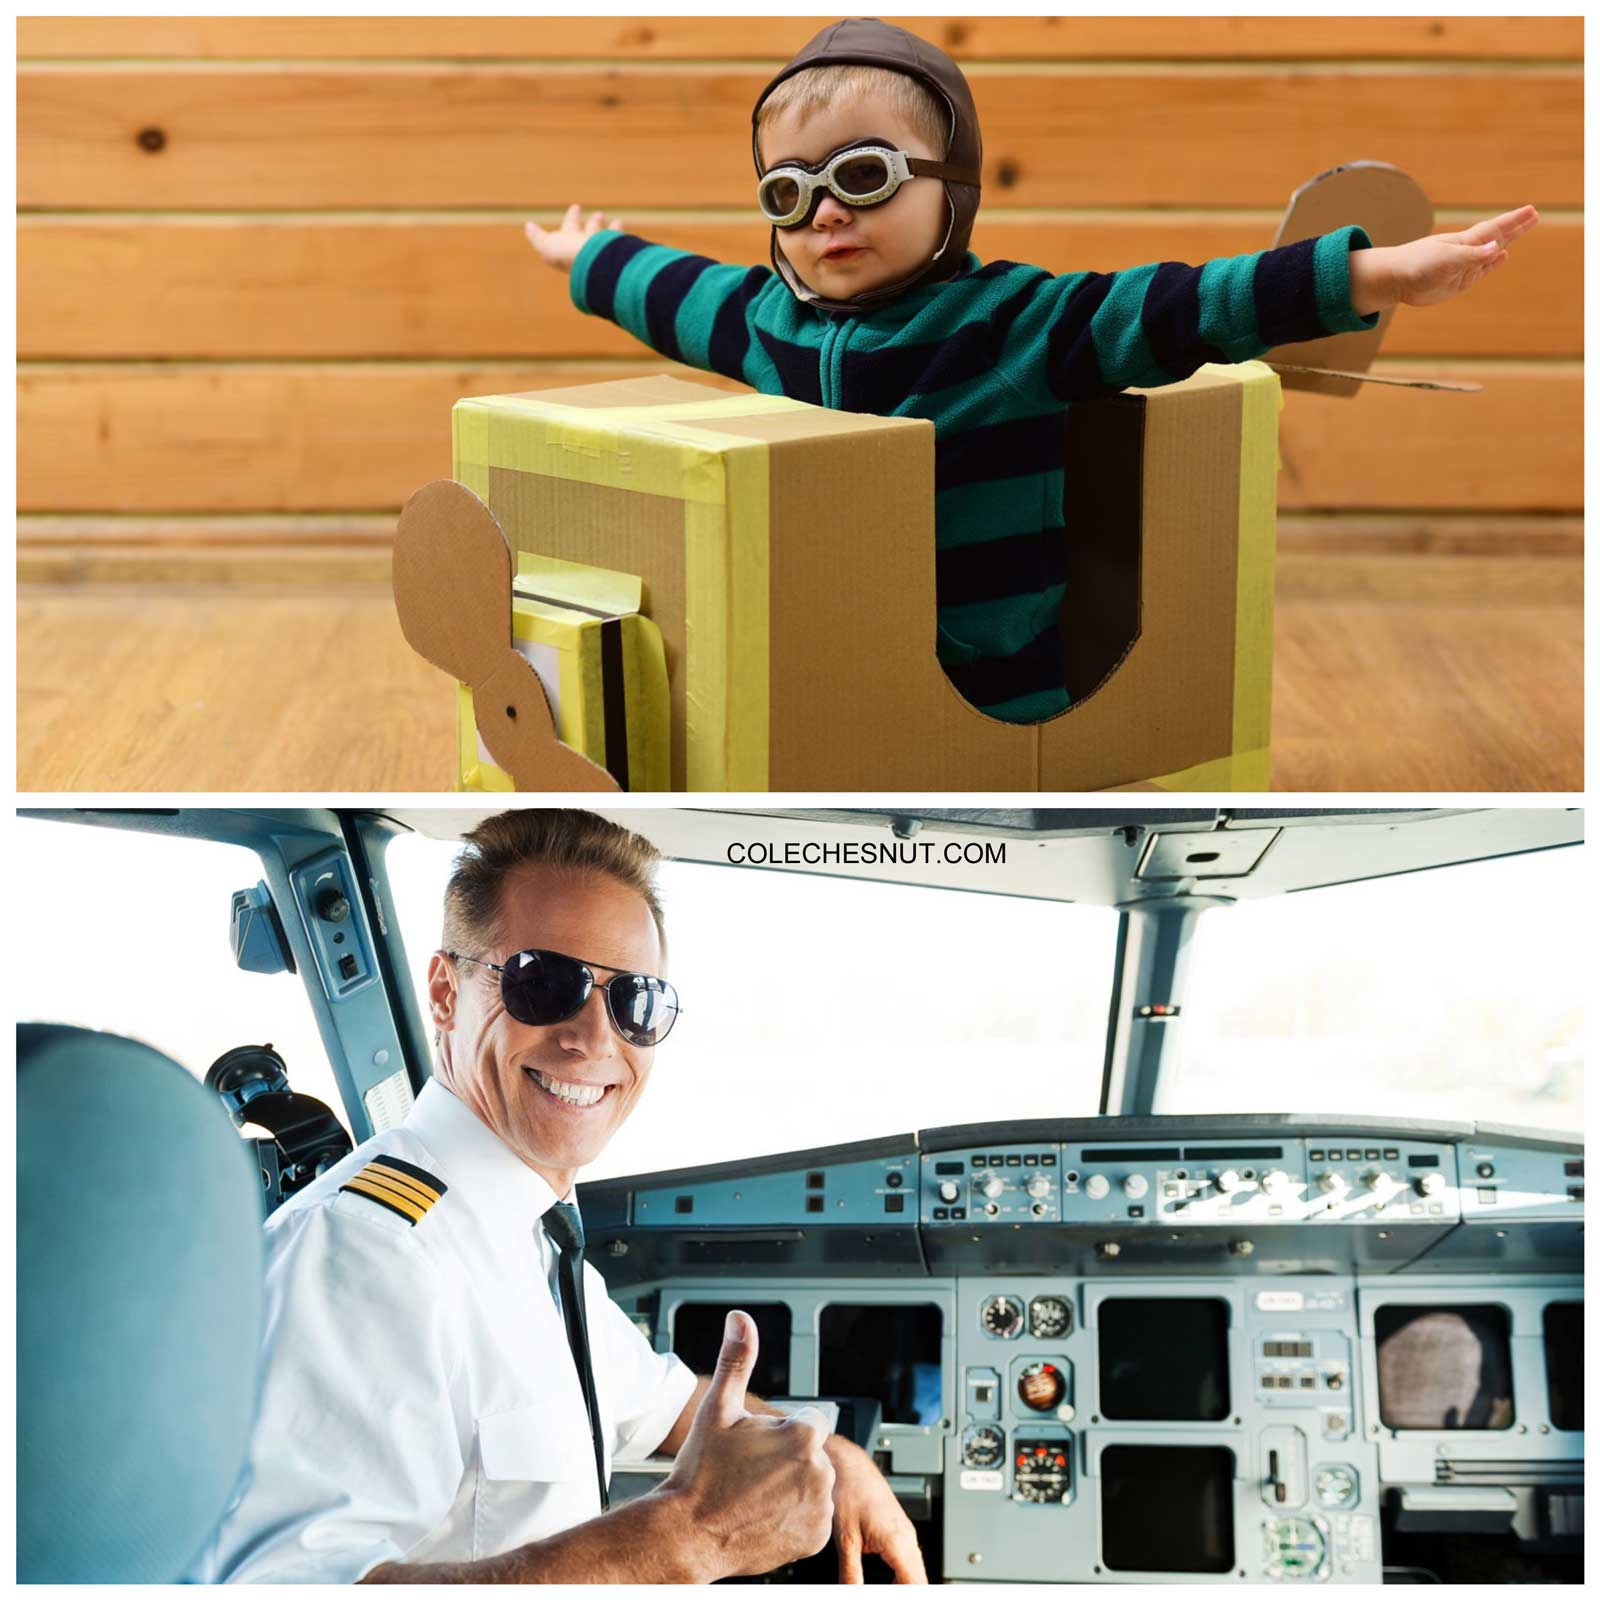 Growing up to be an airplane pilot.